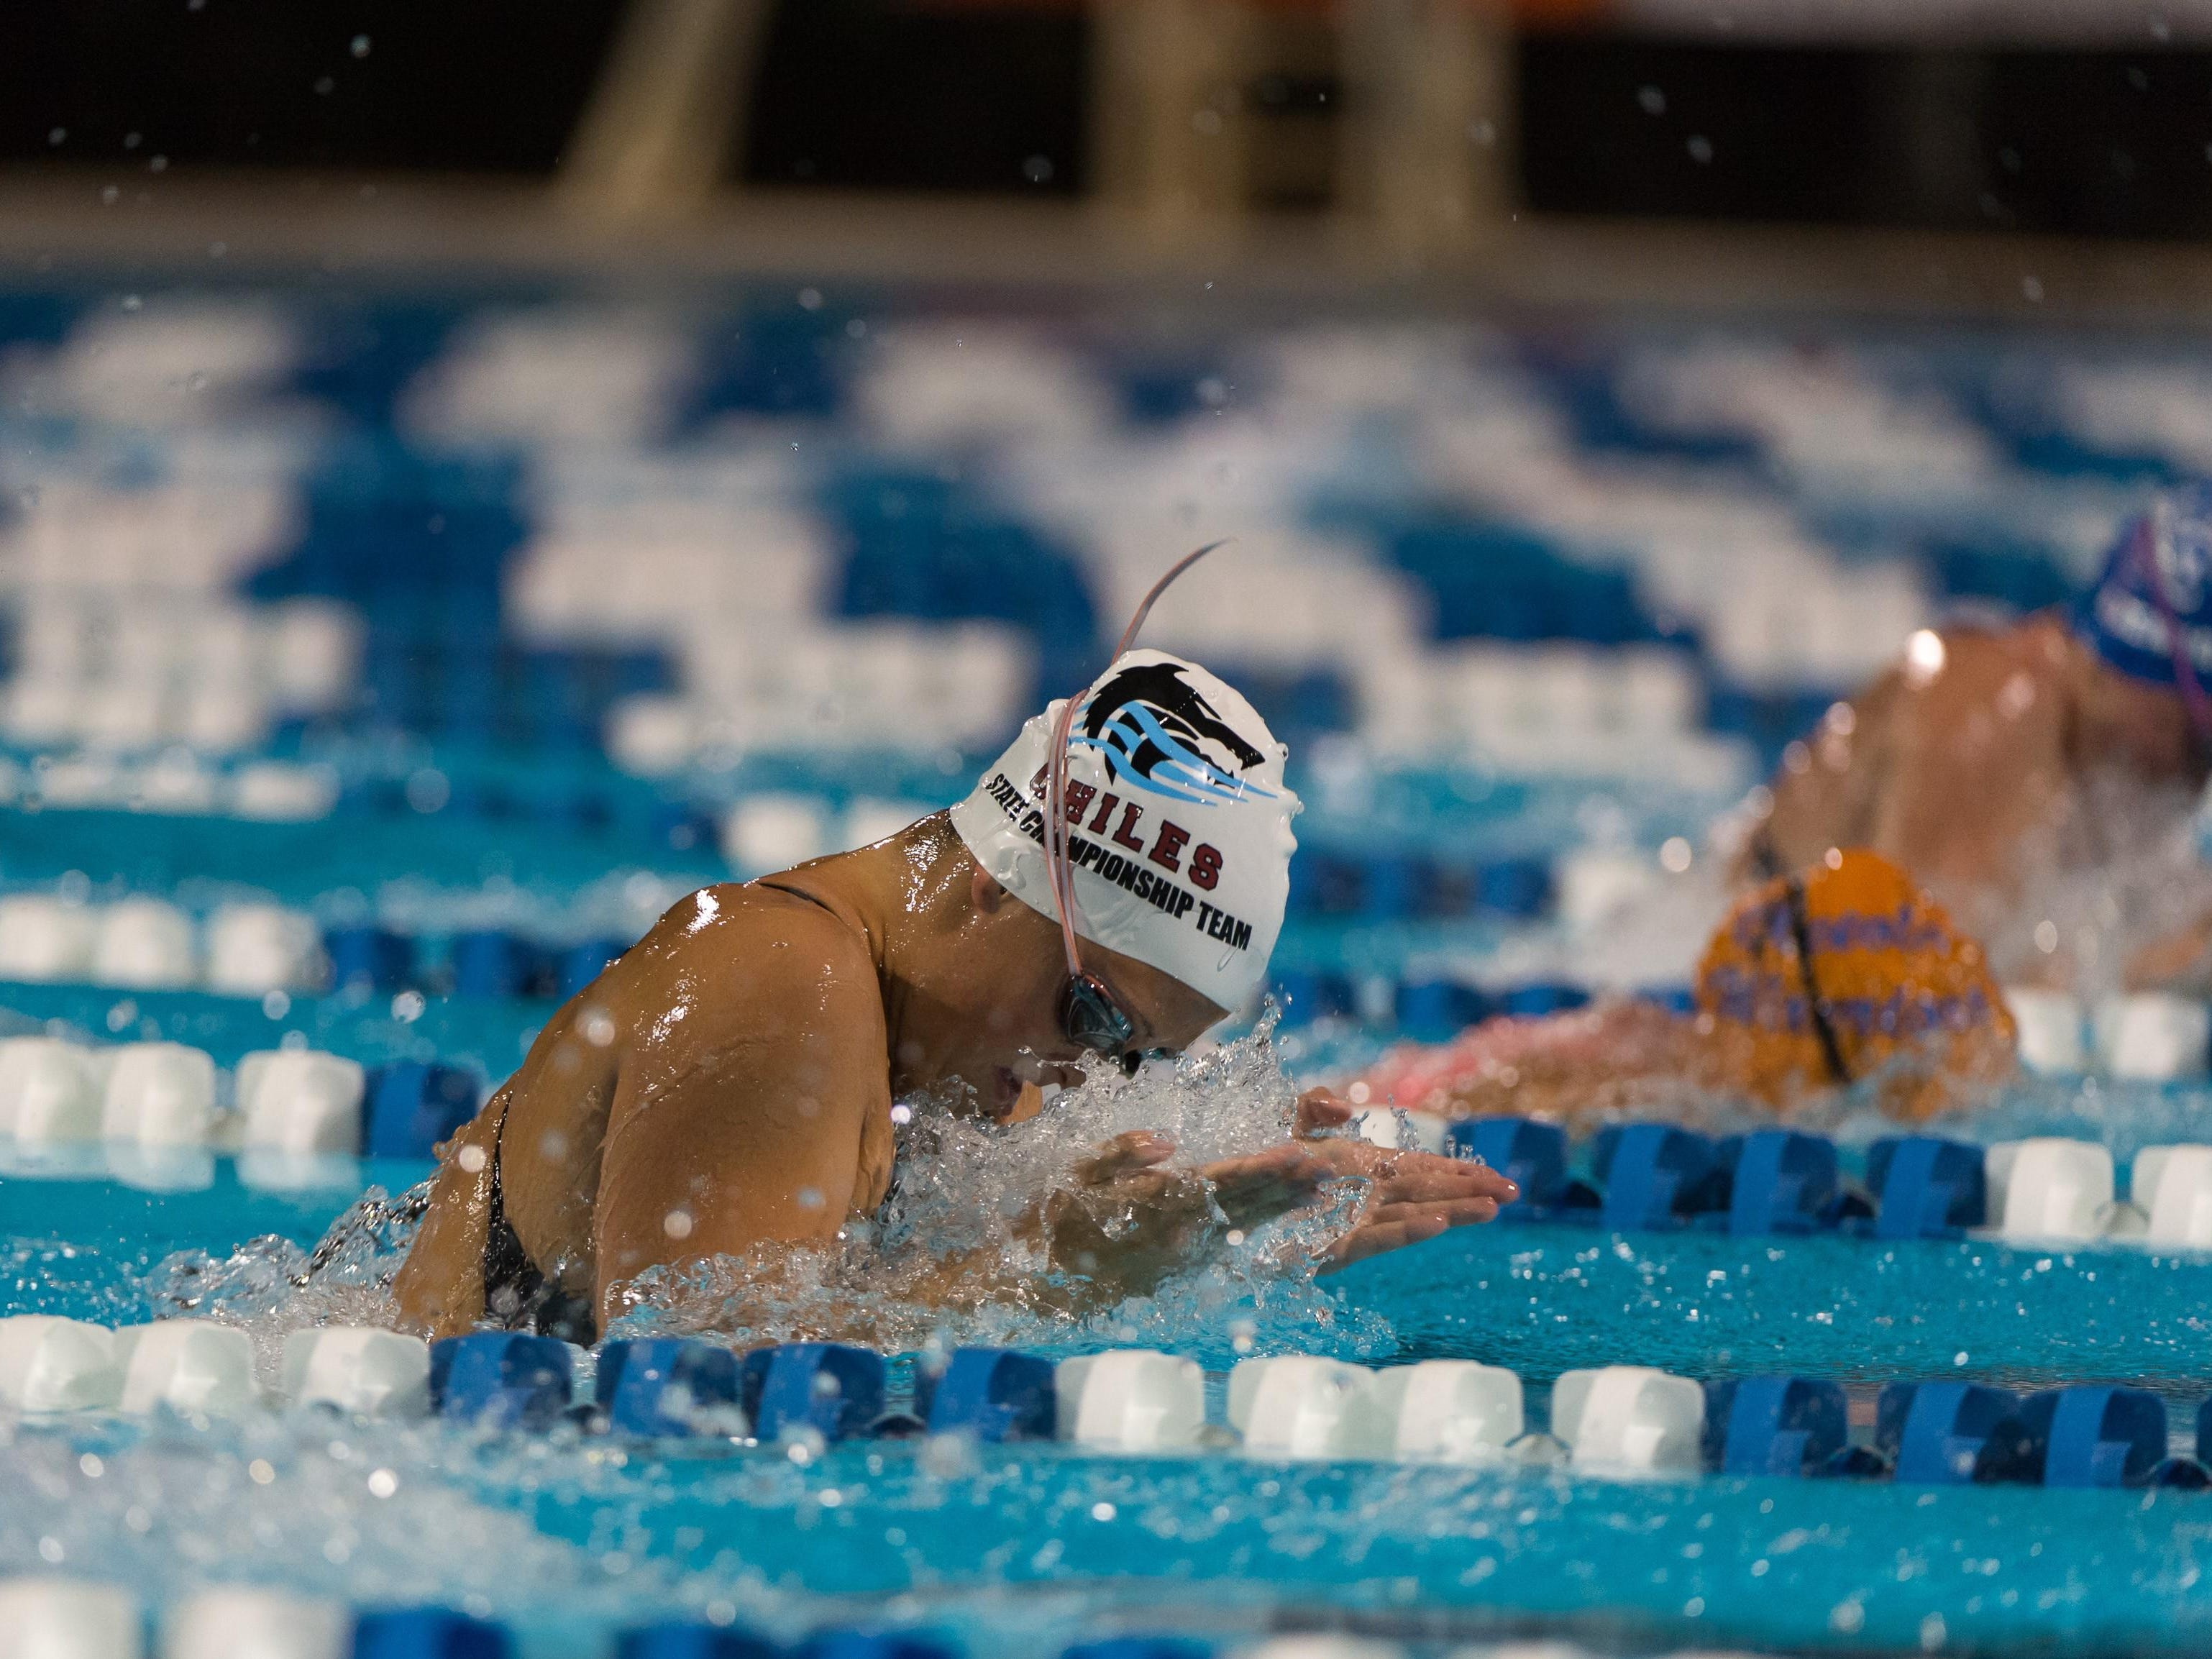 Chiles junior Morgan Ayers captured a state title Friday in Stuart in the 100-meter breast stroke with a winning time of 1:04.81.